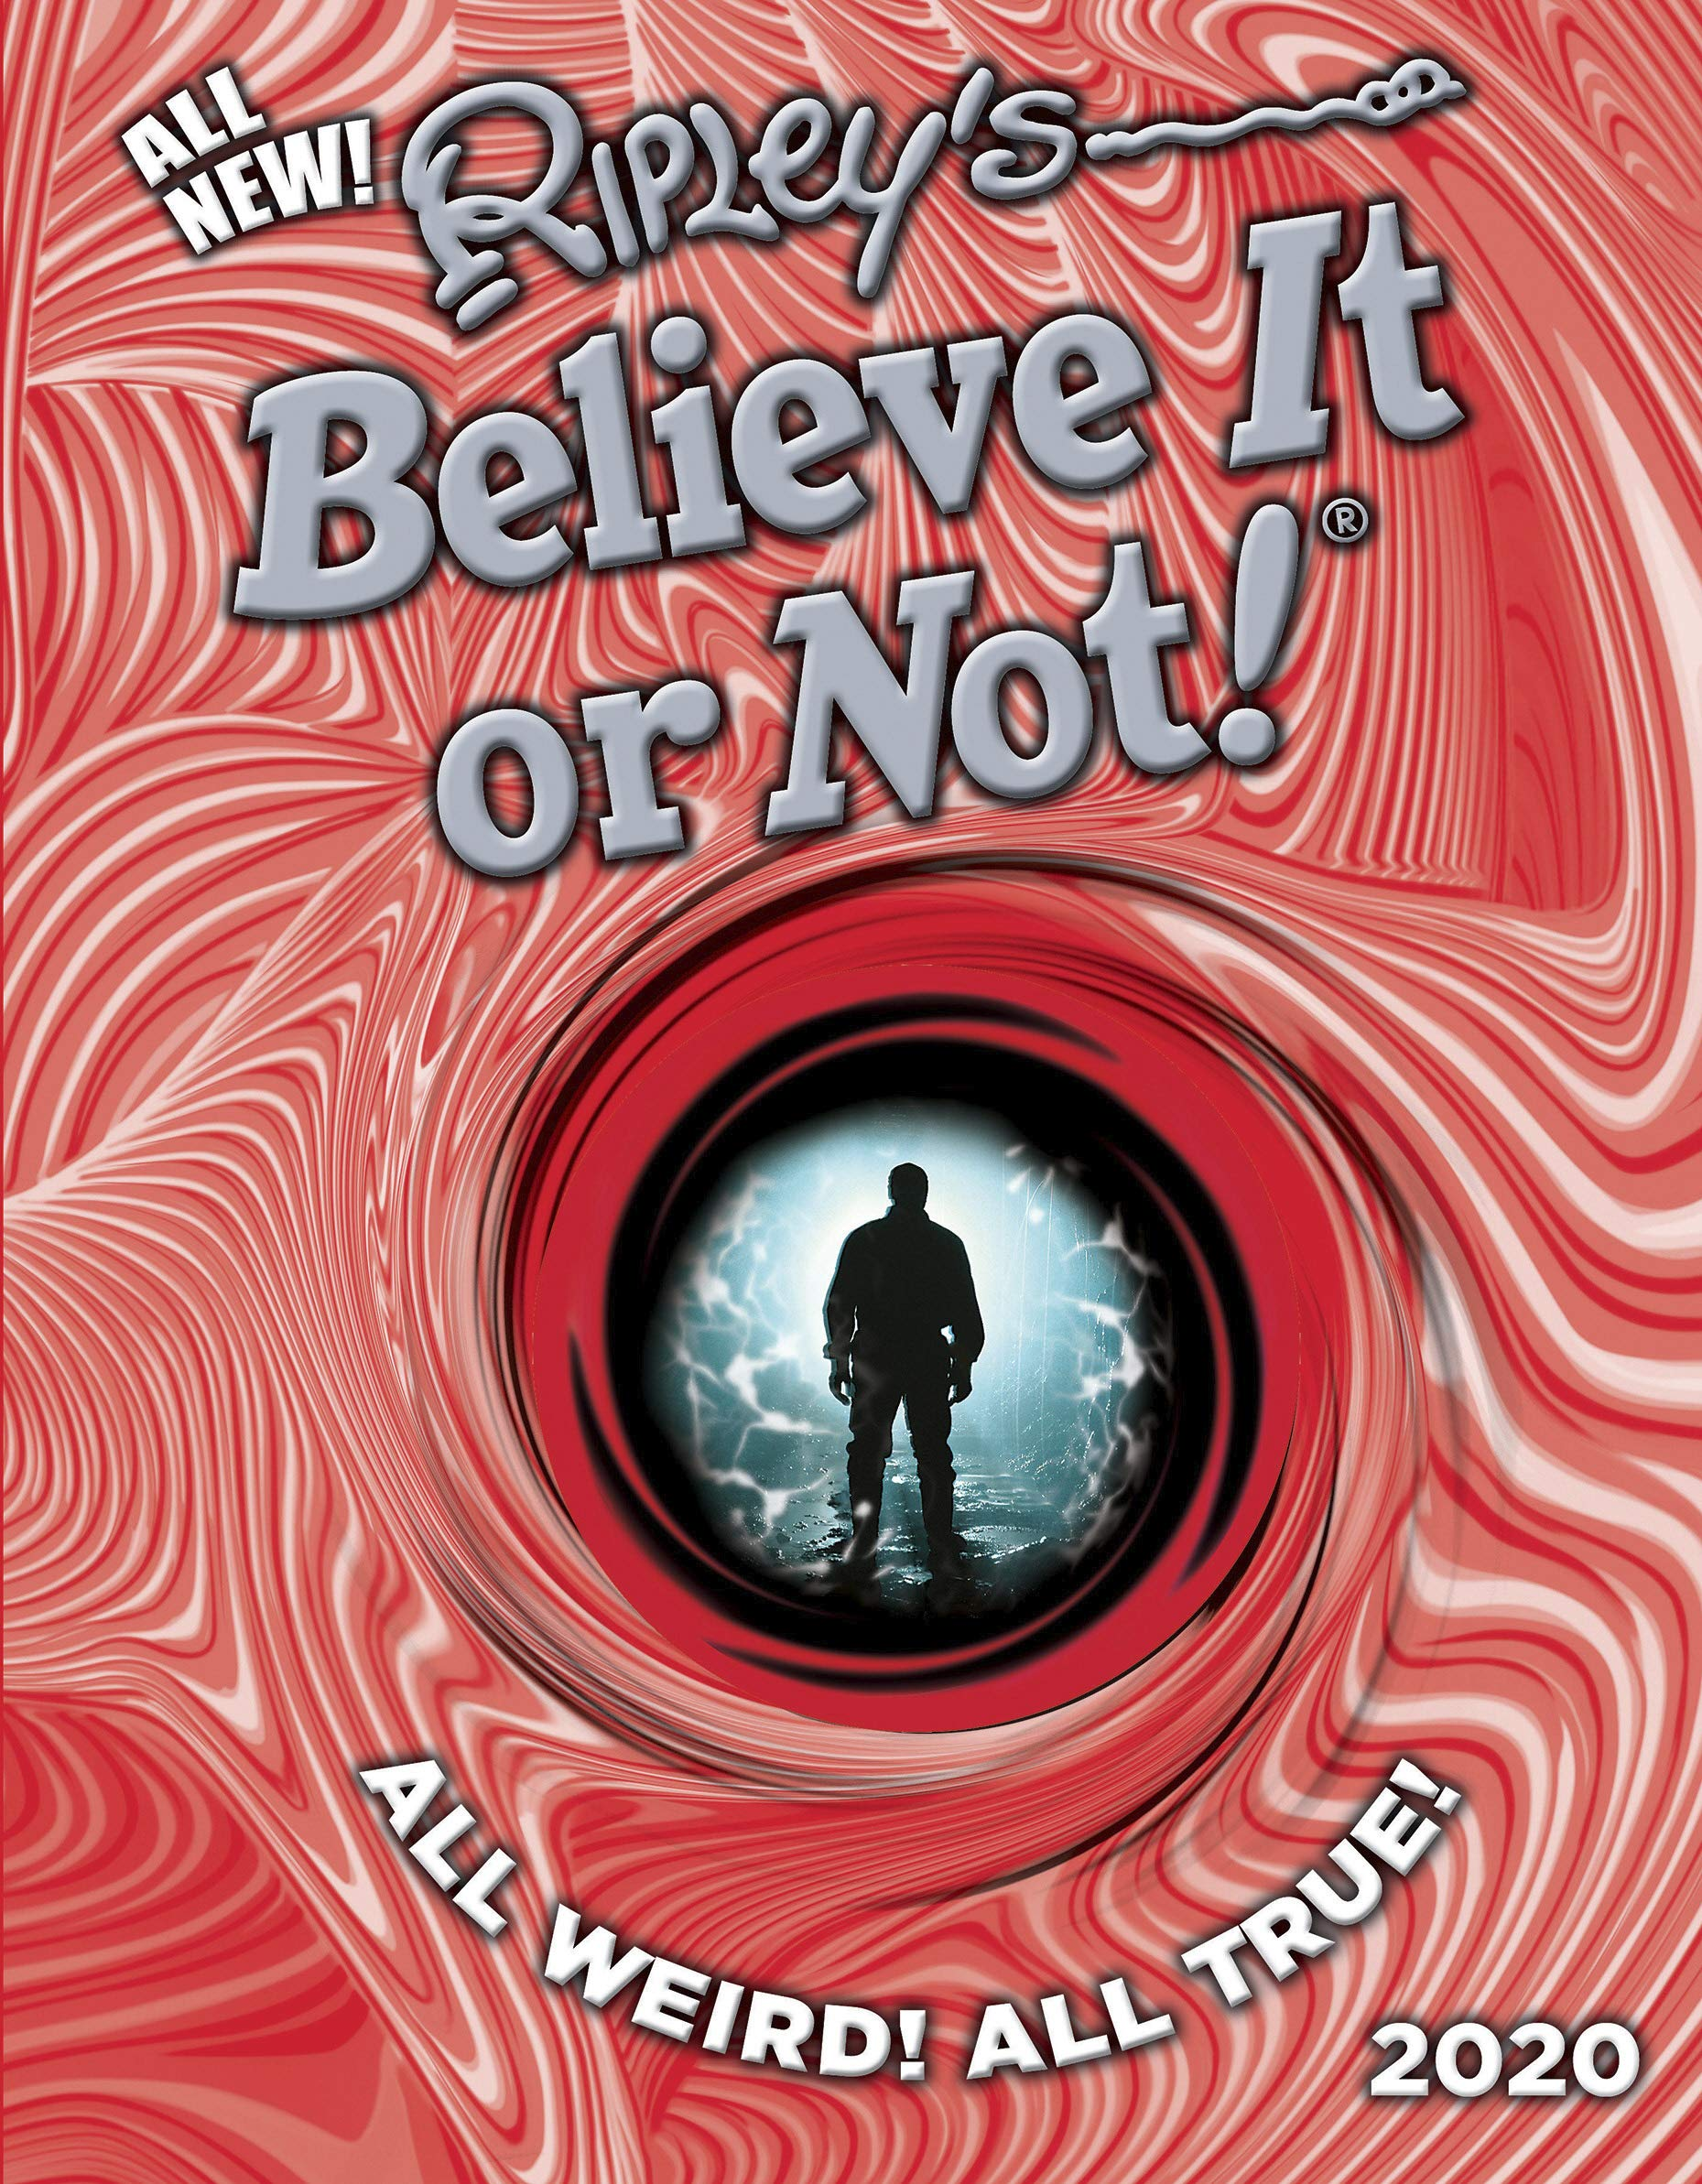 Best Selling Albums Of 2020.Ripley S Believe It Or Not 2020 Annuals 2020 Amazon Co